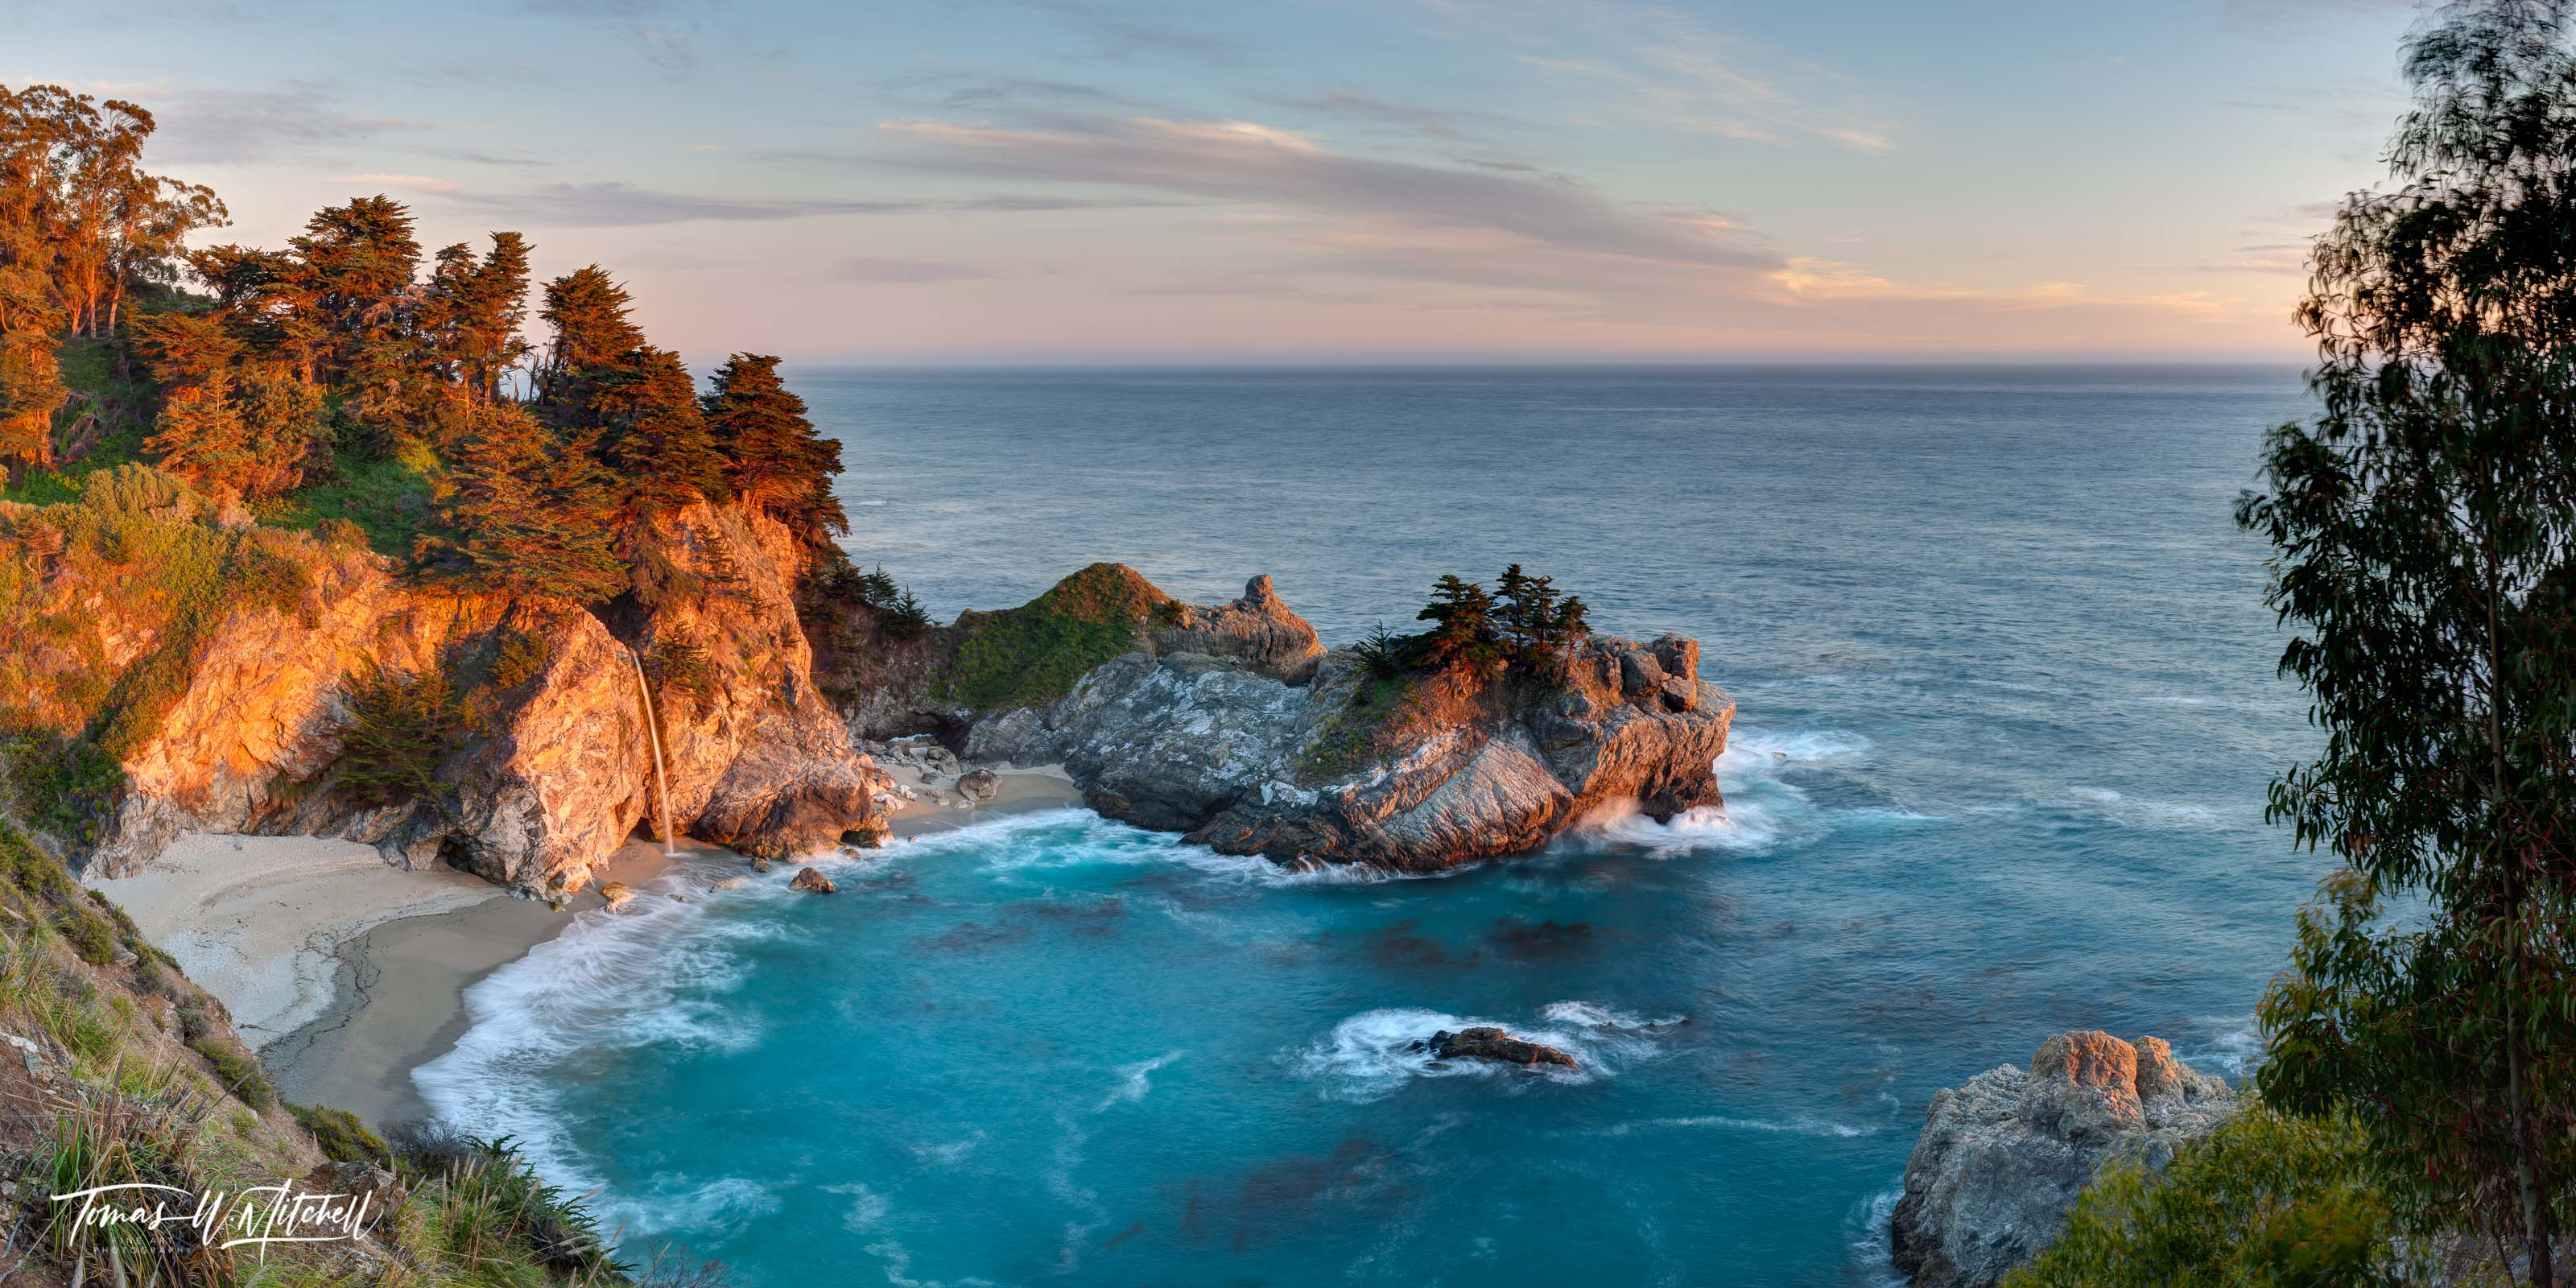 limited edition, fine art, prints, mcway falls, julia pfeiffer burns state park, california, waterfall, beach, waves, mermaid cove, photograph, panoramic, sunset,, photo